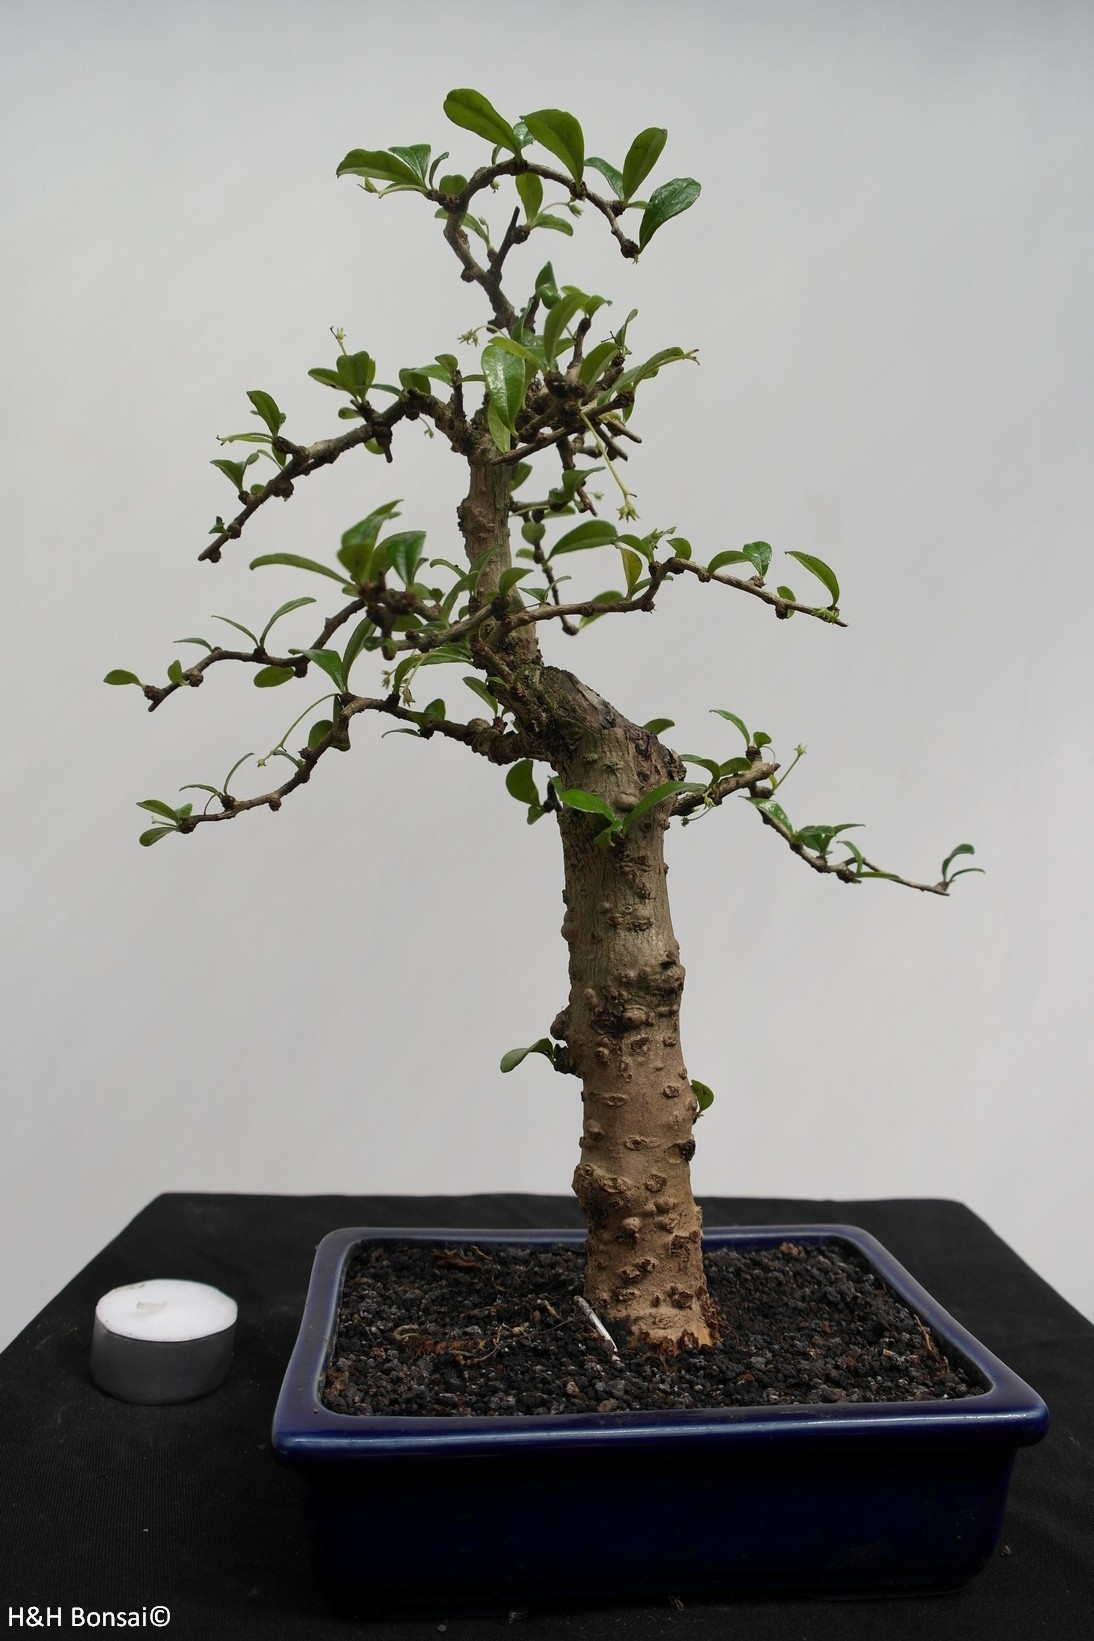 Bonsai Fukien Tea, Carmona macrophylla, no. 7866